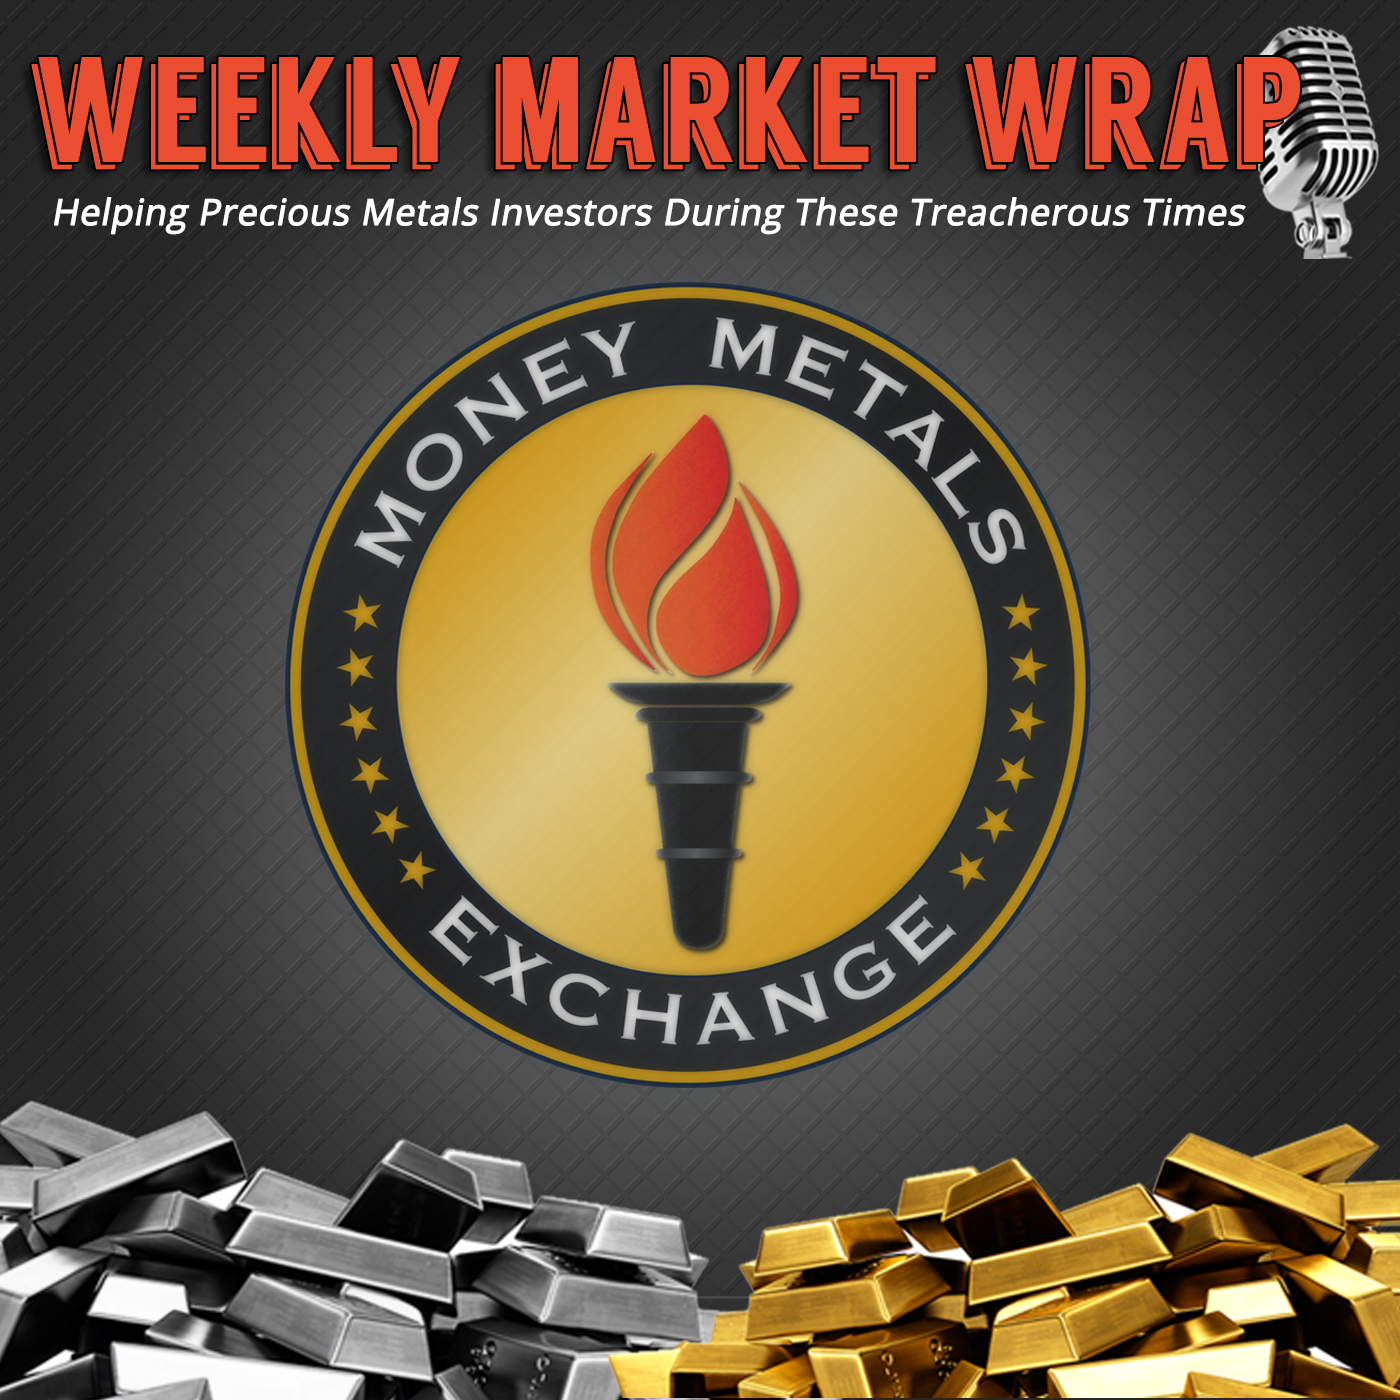 Money Metals' Weekly Market Wrap on iTunes